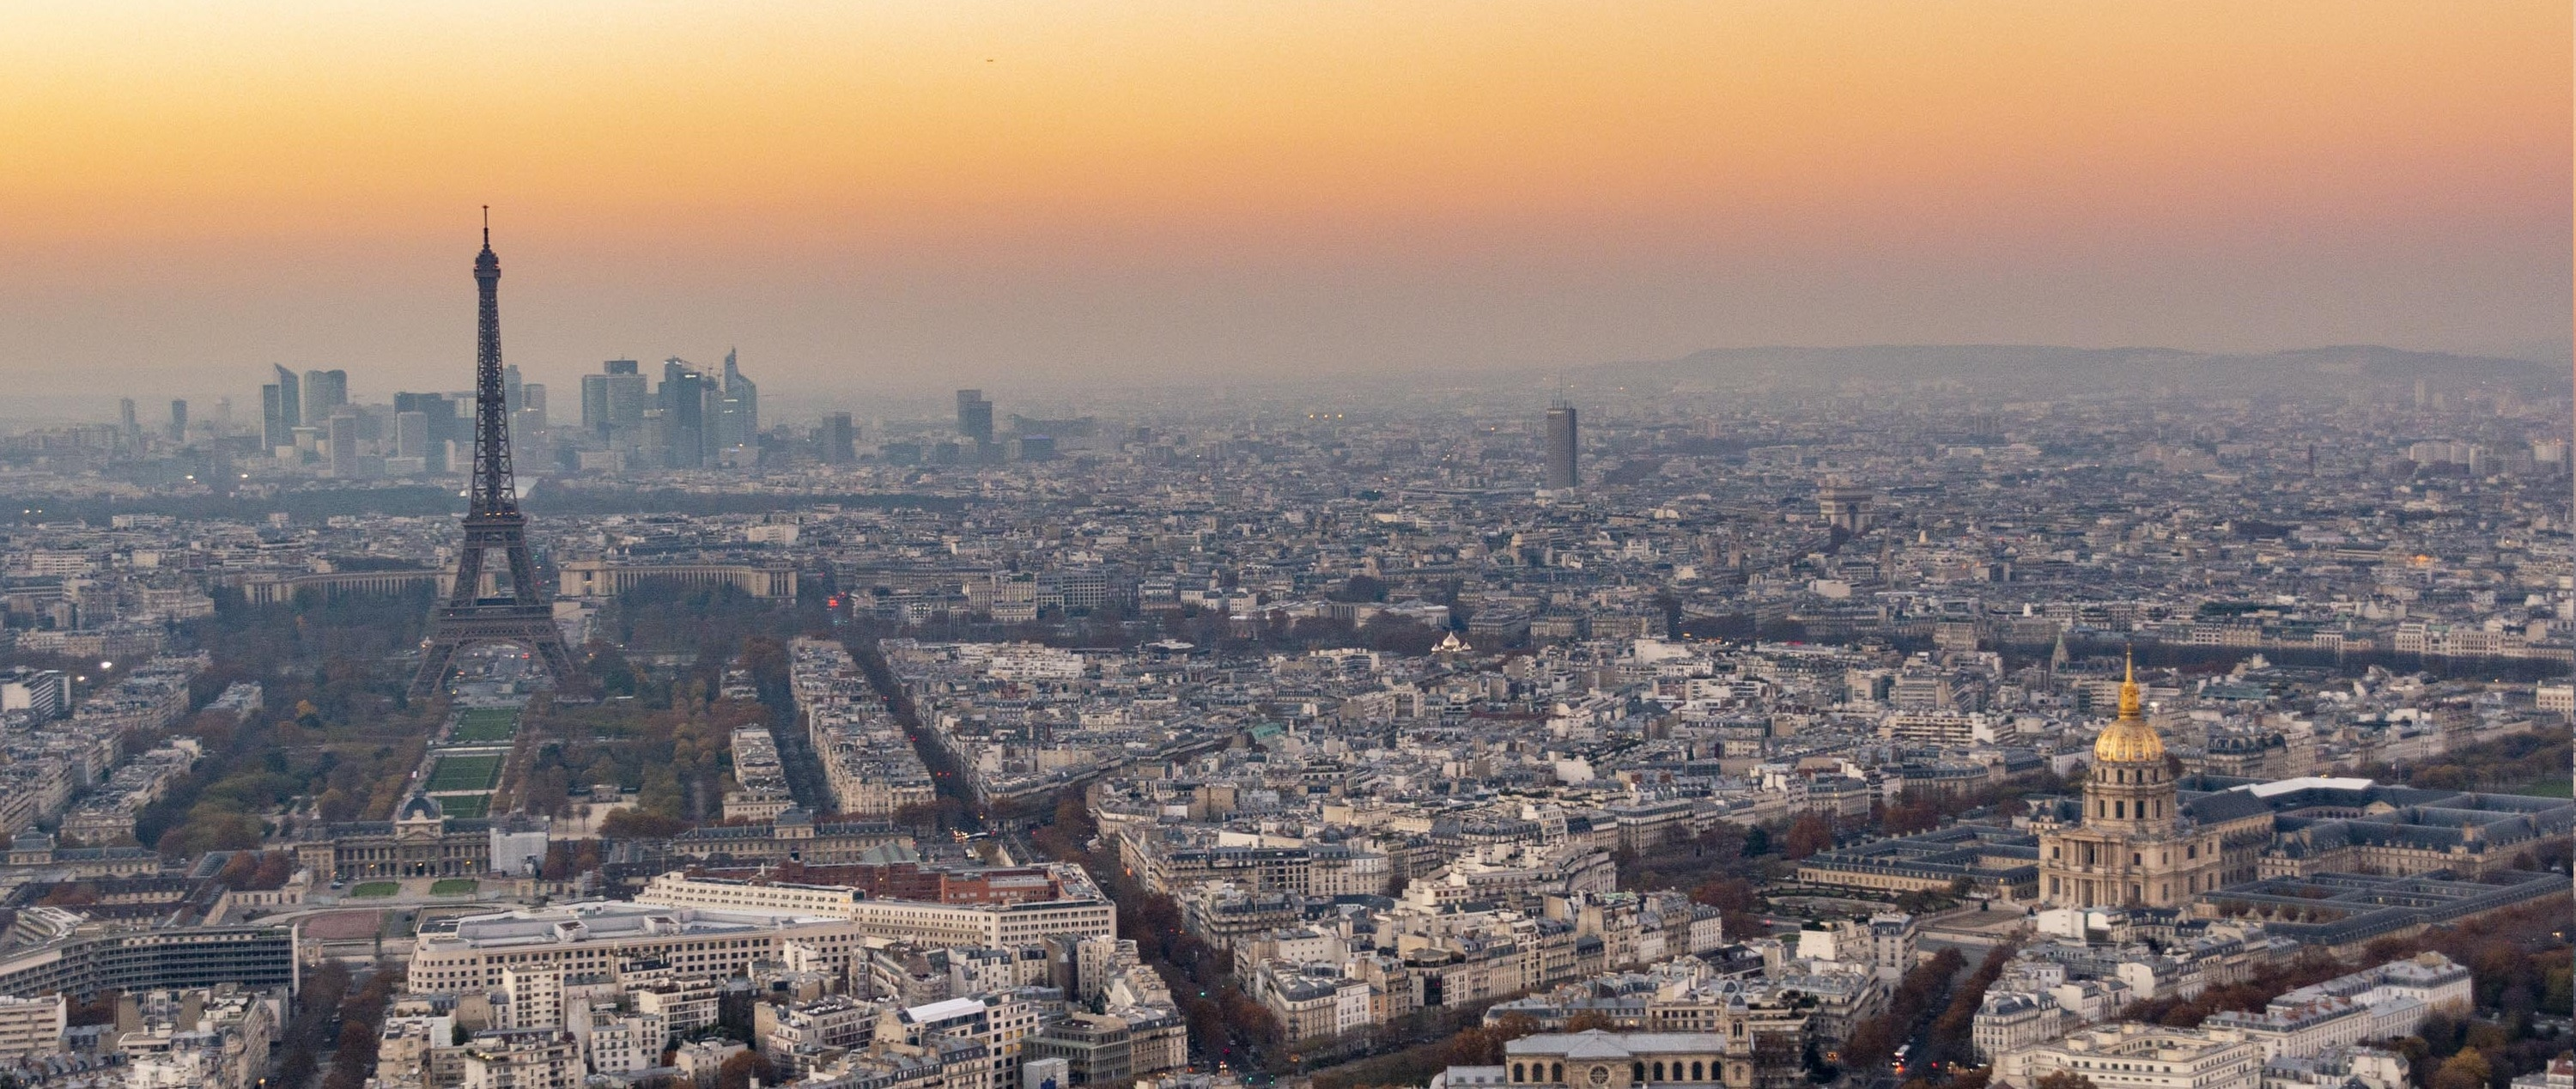 How To Spend An Unforgettable Weekend In Paris? Full Itinerary.